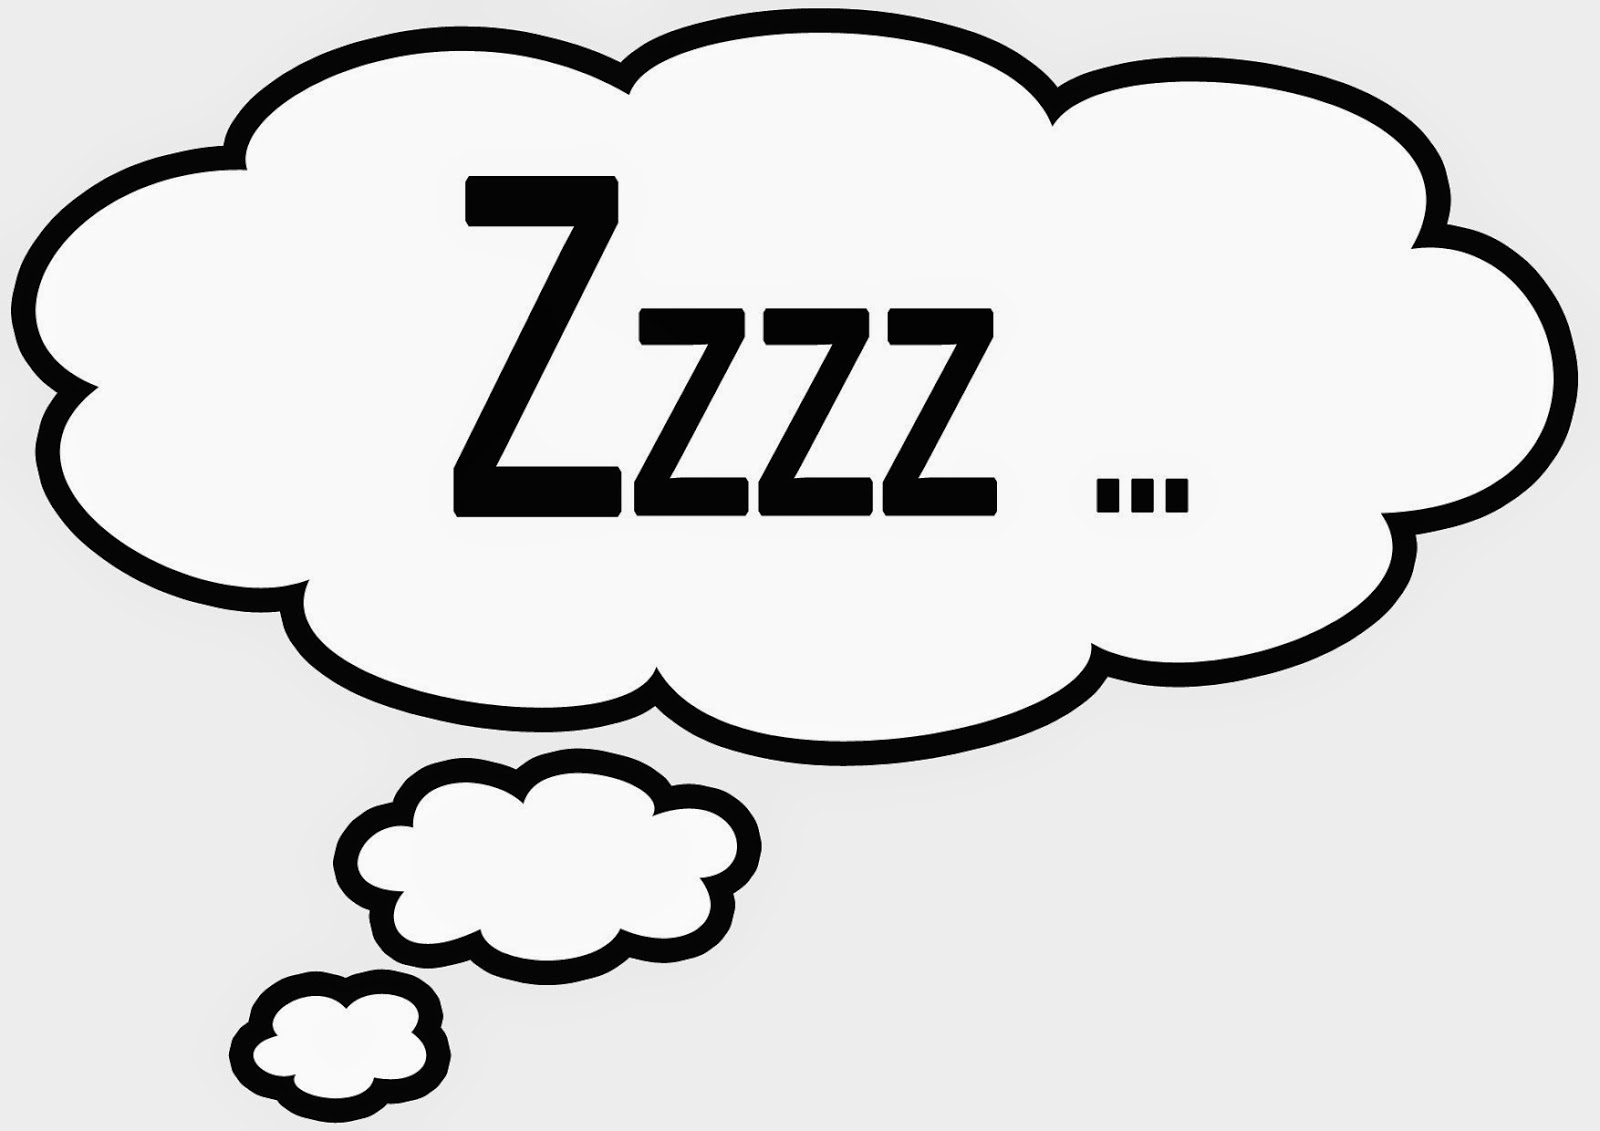 Zzzz clipart black and white clip art royalty free Zzzz Clipart Group with 60+ items clip art royalty free